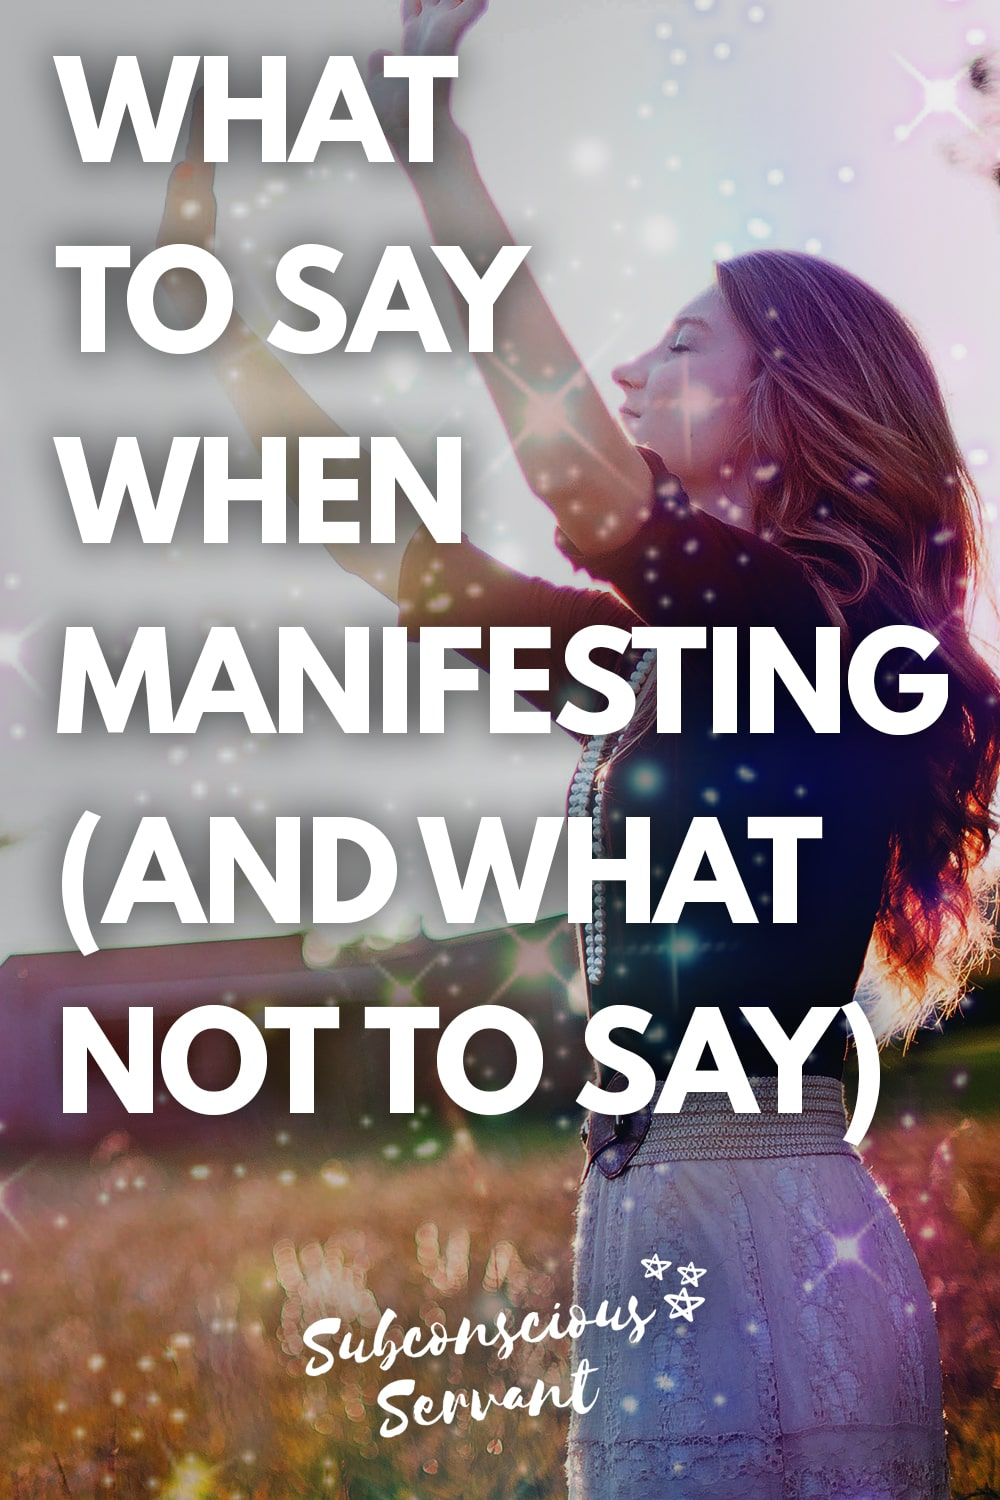 What To Say When Manifesting (And What Not To Say)